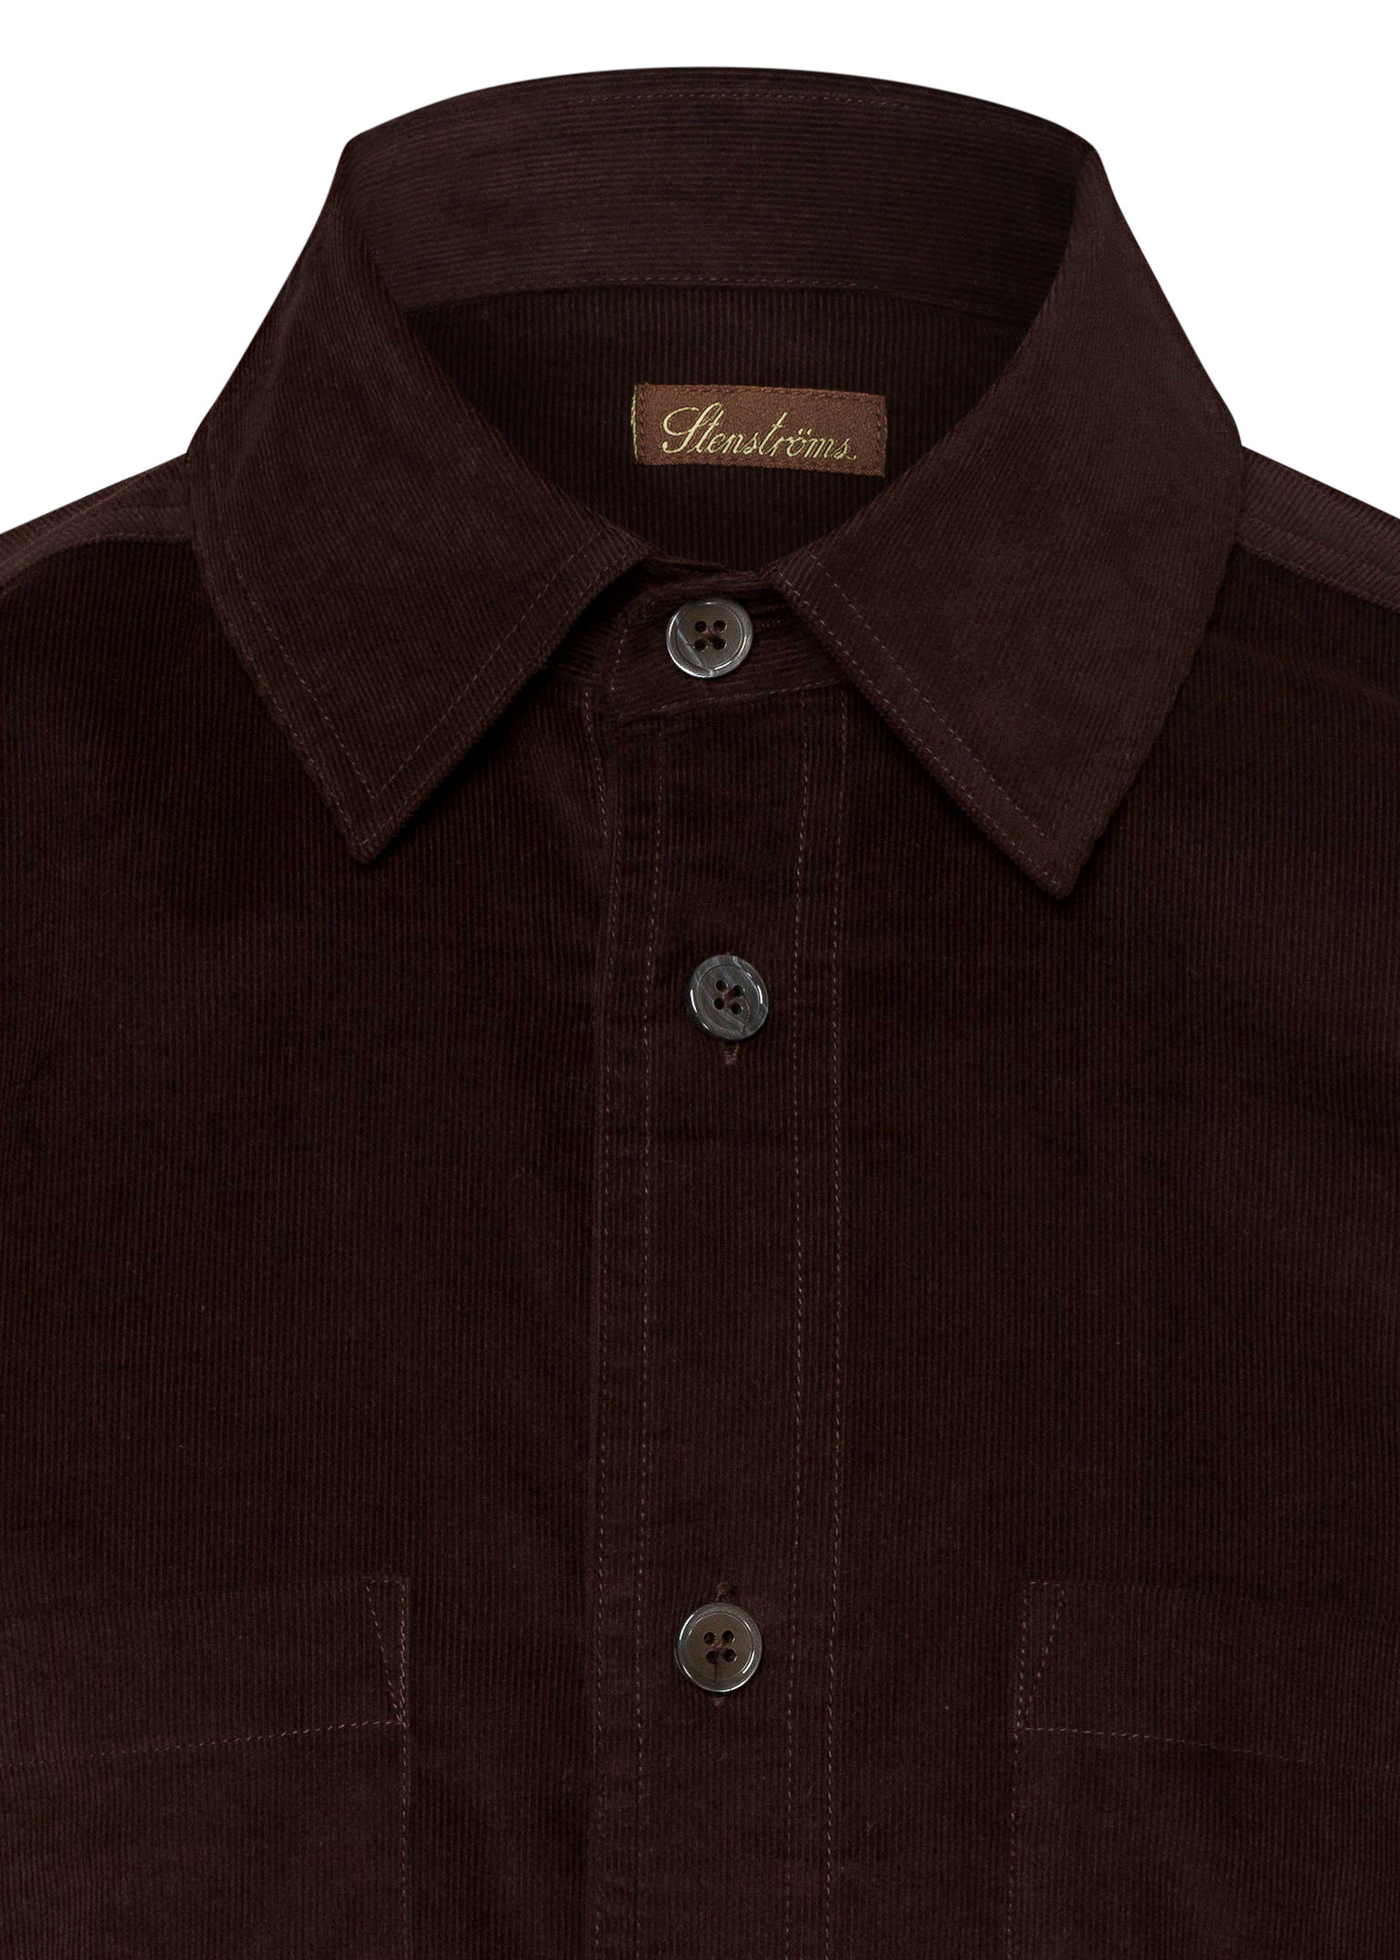 Cotton Cord Overshirt image number 2